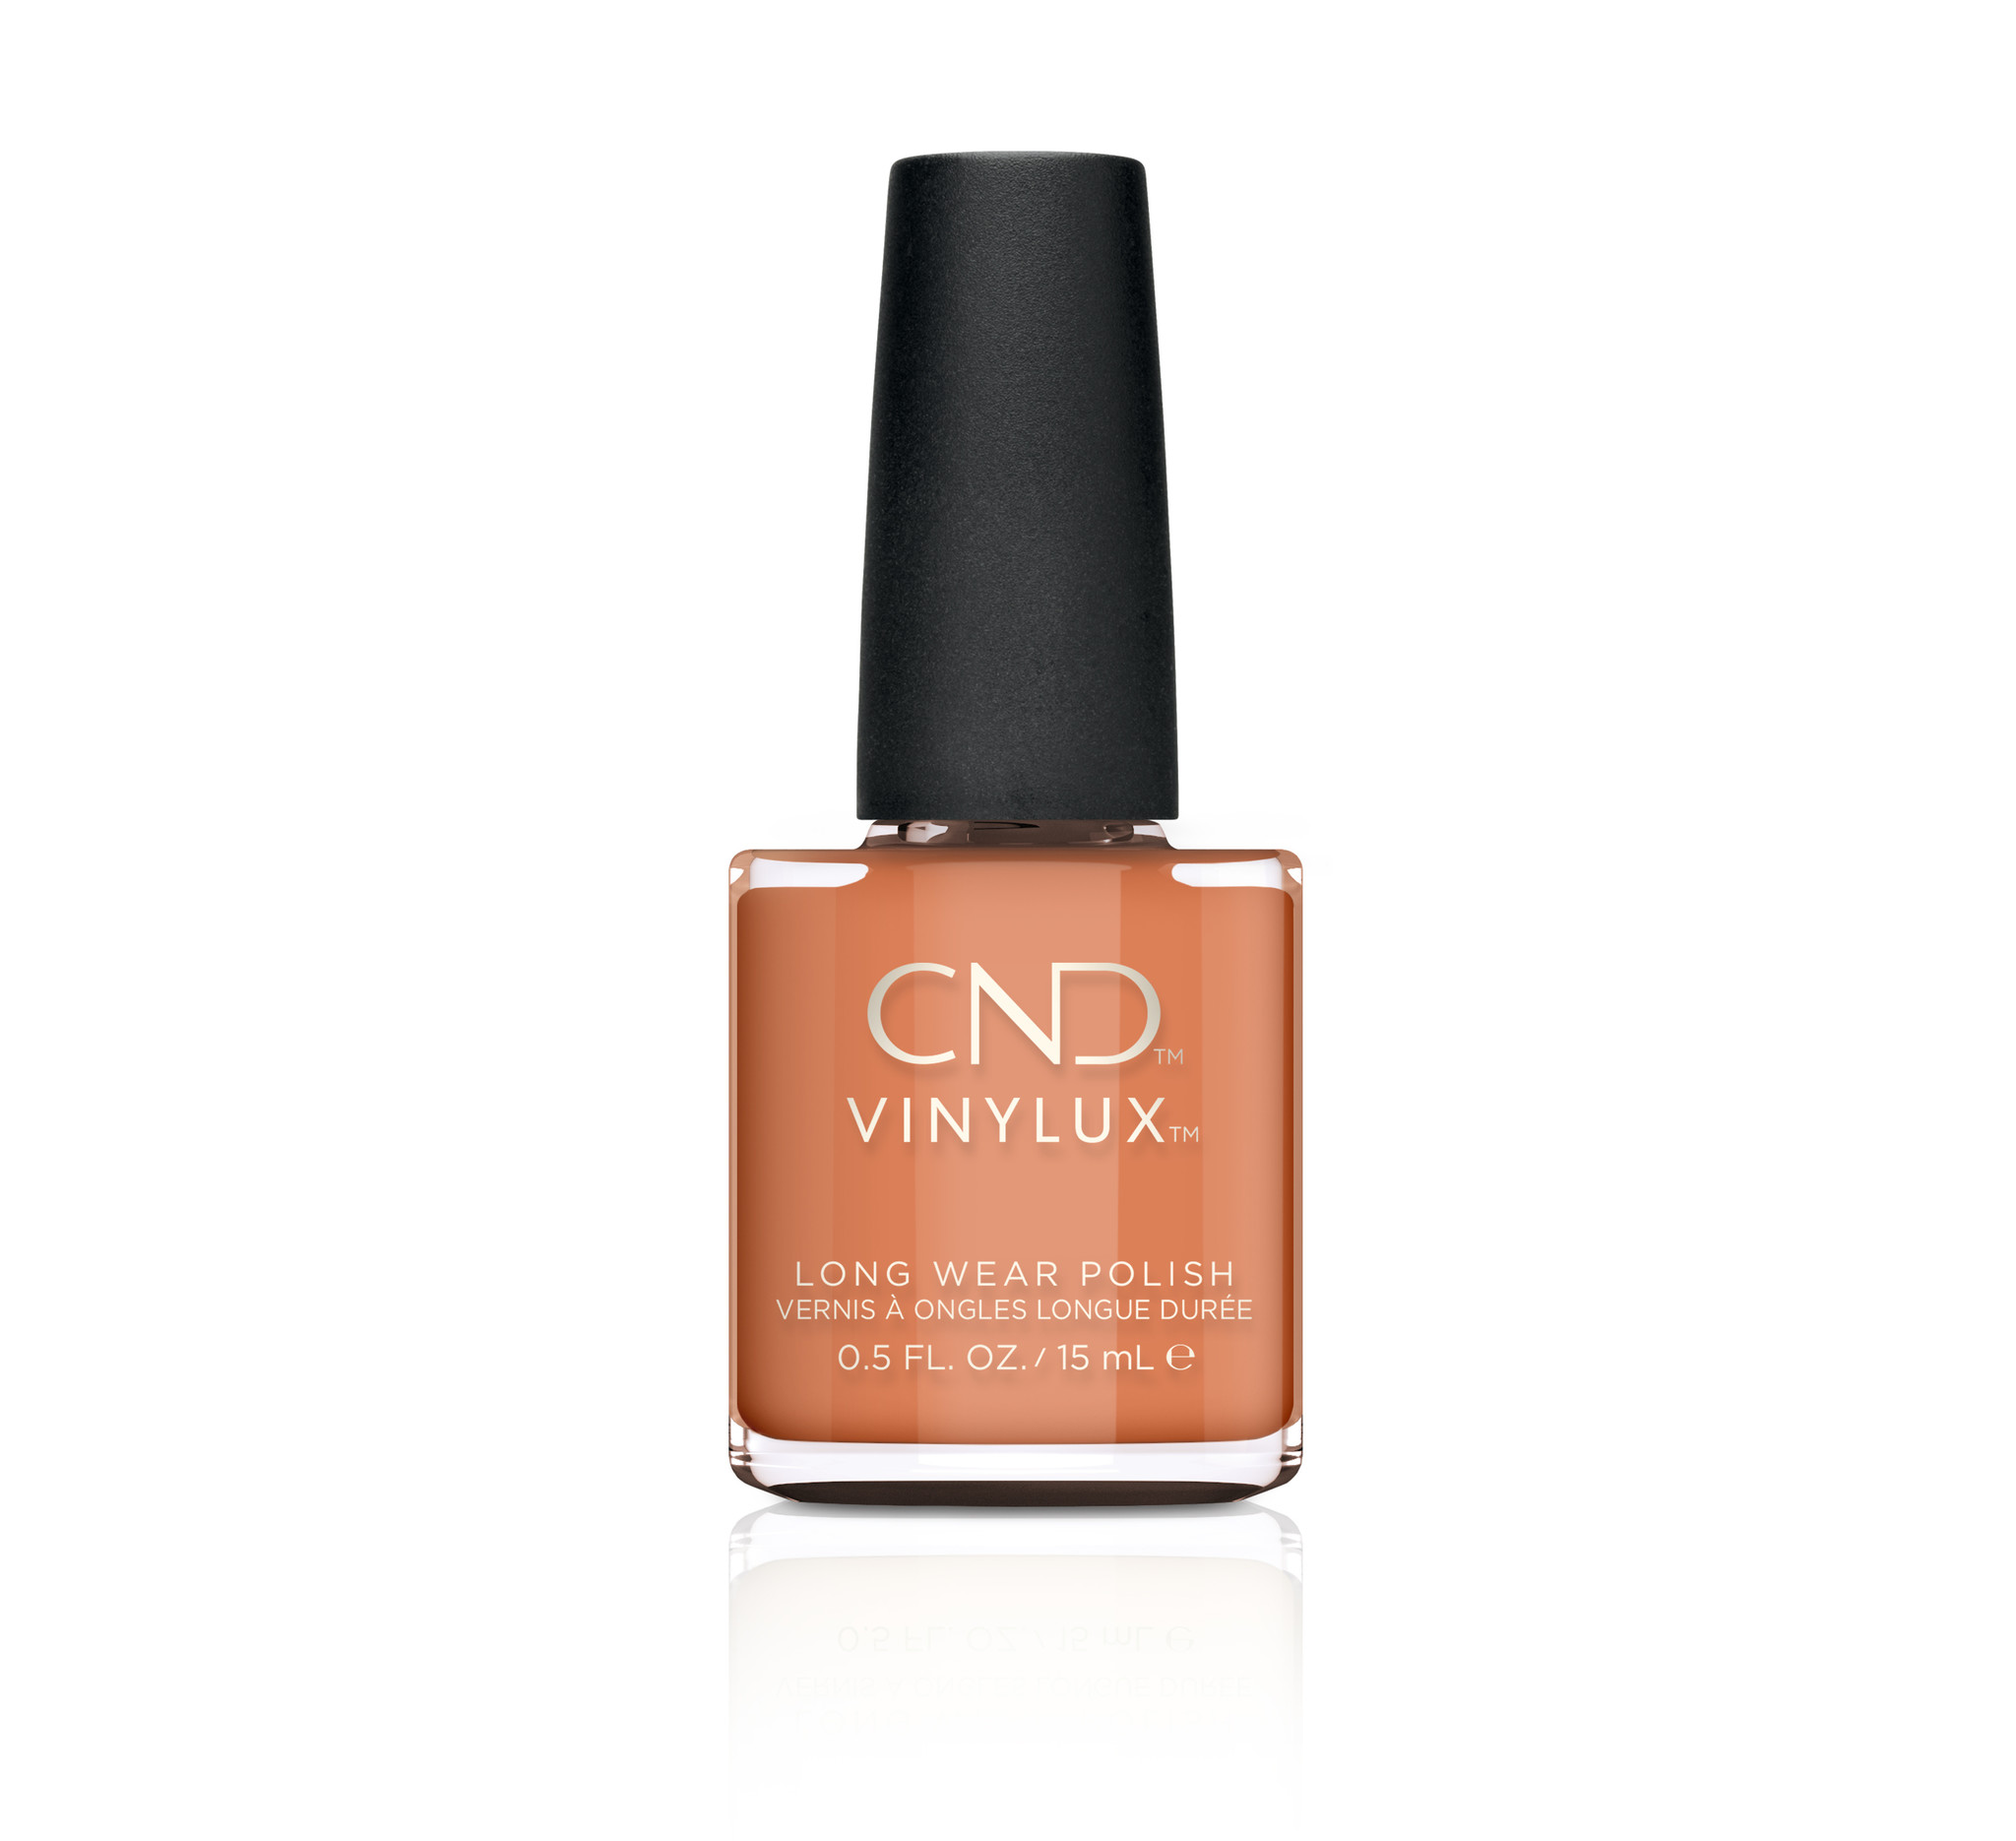 CND vinylux Vernis à ongles longue durée: CATCH OF THE DAY